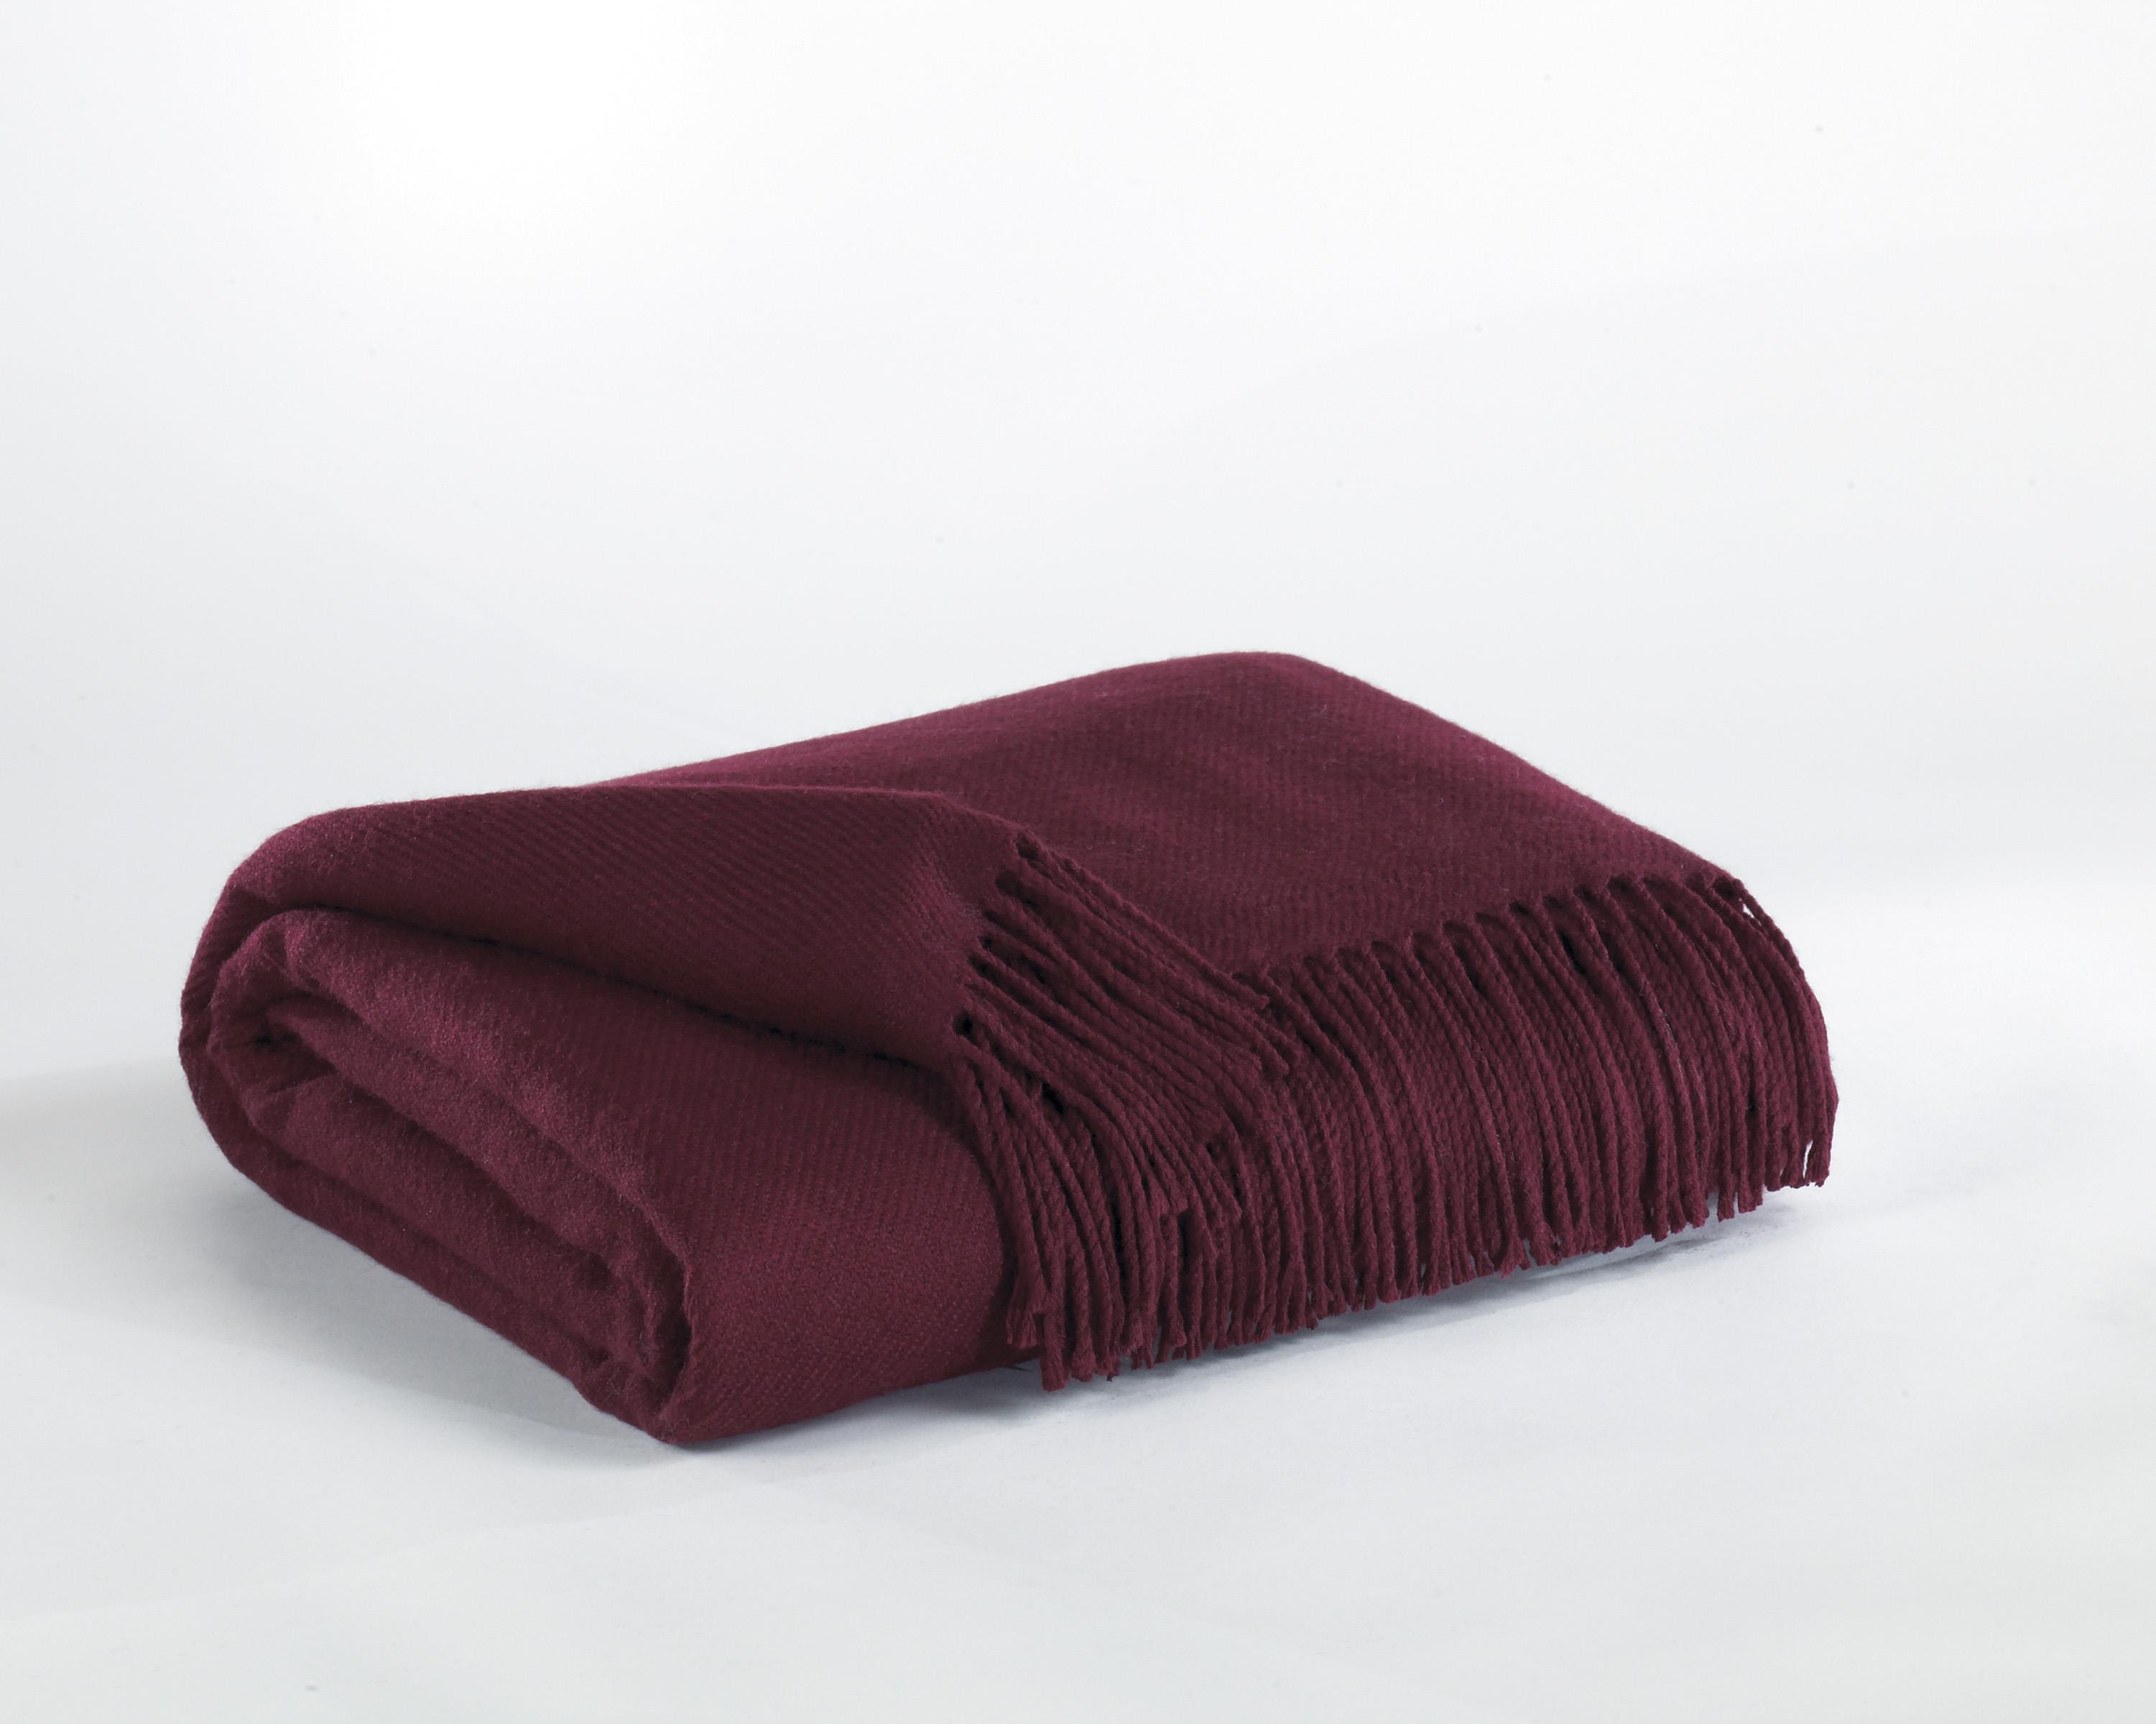 Signature Design by Ashley Throws Ashton - Burgundy Throw - Item Number: A1000199T